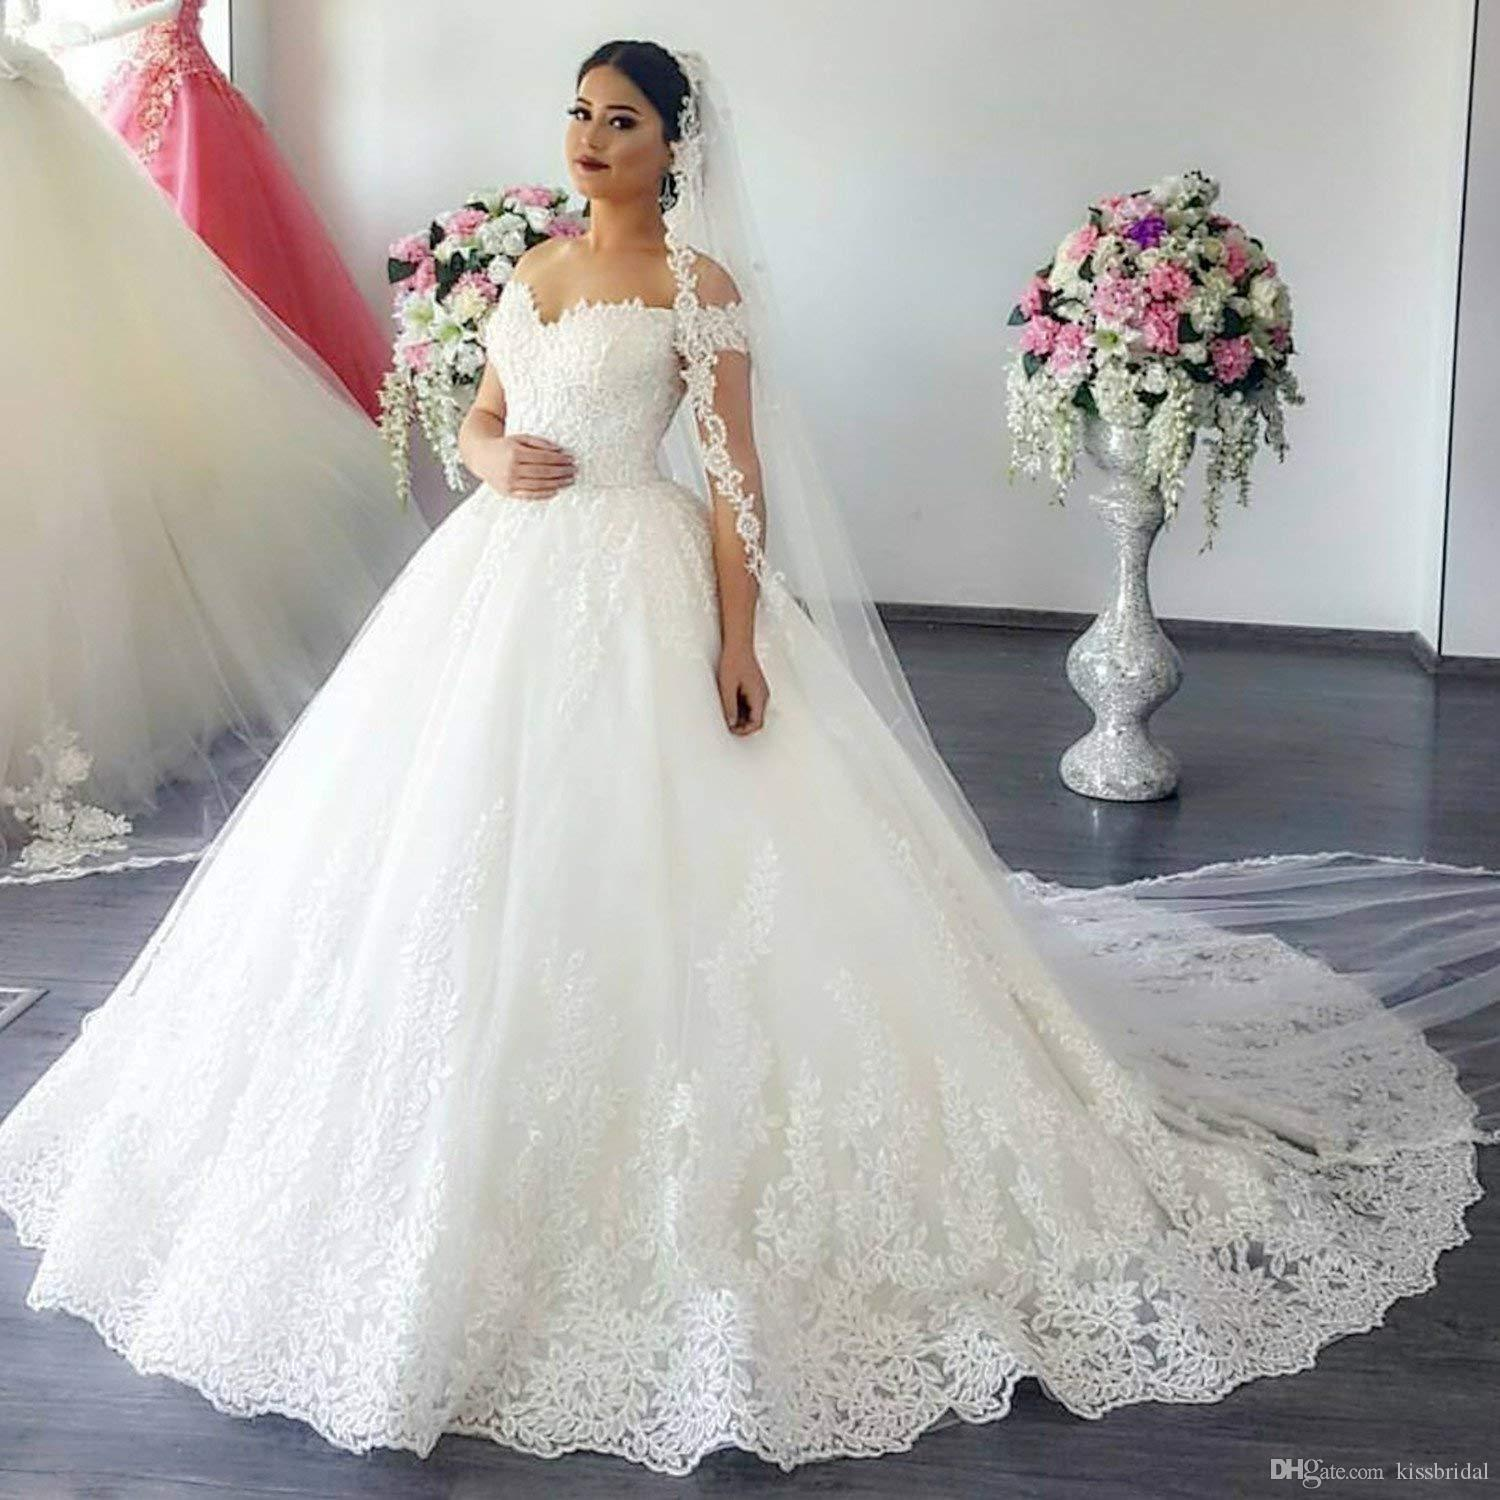 Luxury Lace Princess Off the Shoulder Wedding Dresses Sweetheart Sheer Back Princess Illusion Applique Bridal Gowns robe de mariage